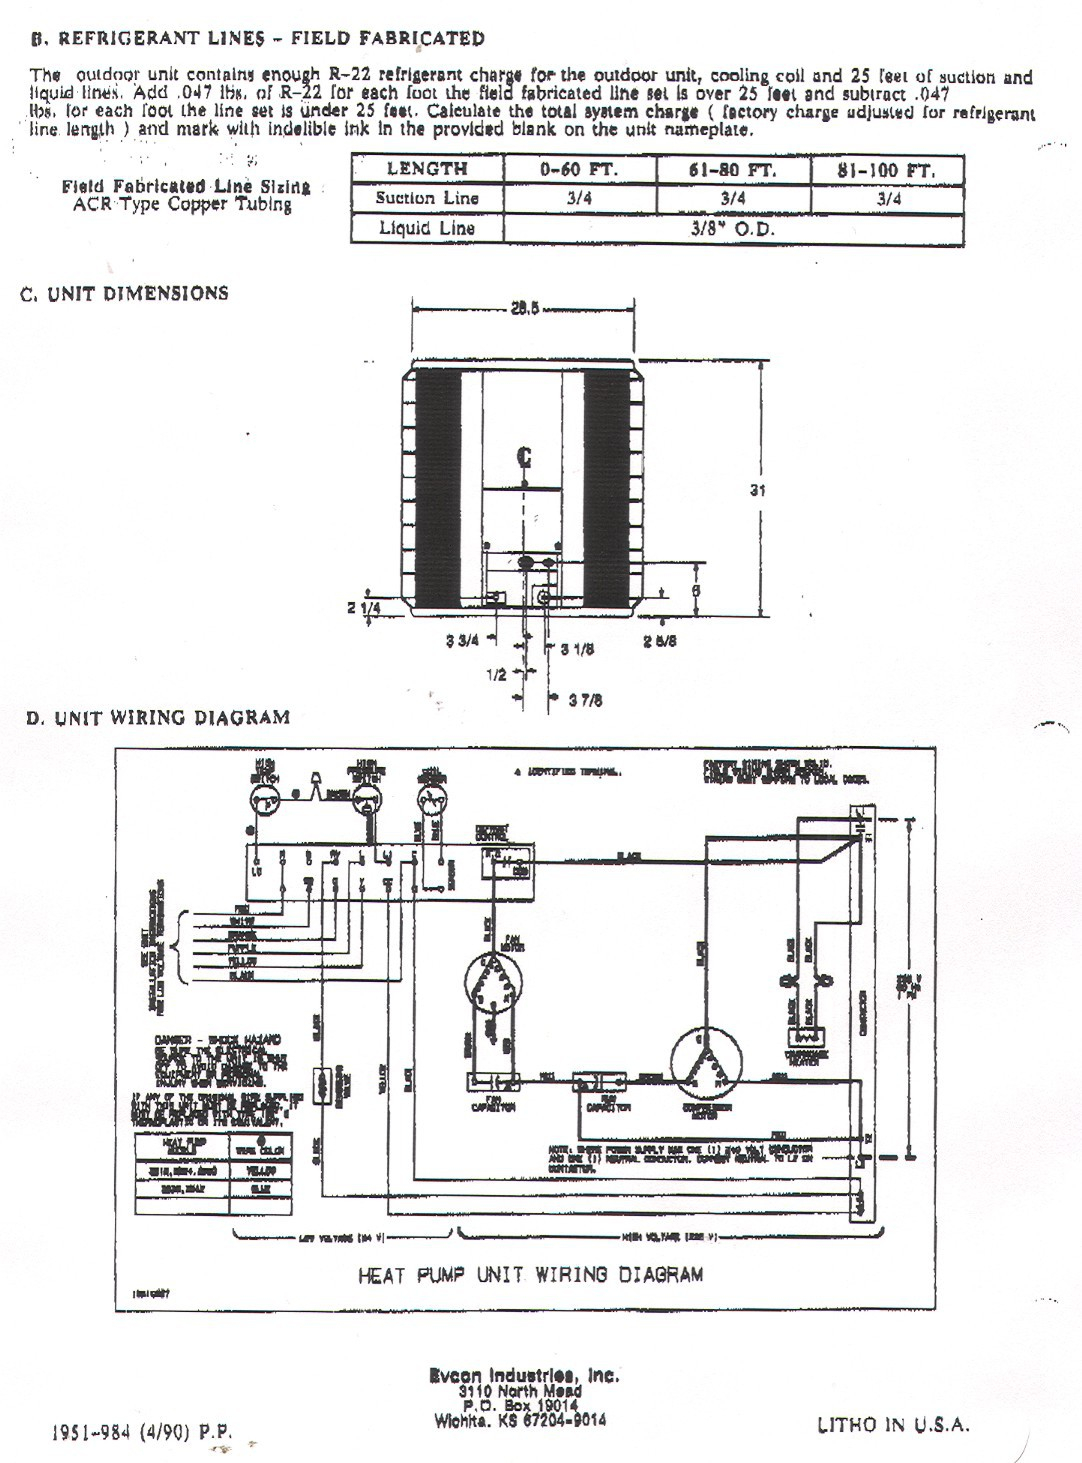 Icp Heat Pump Wiring Diagram Electrical Schematics Sensor Tempstar Services U2022 3 Ton Defrost